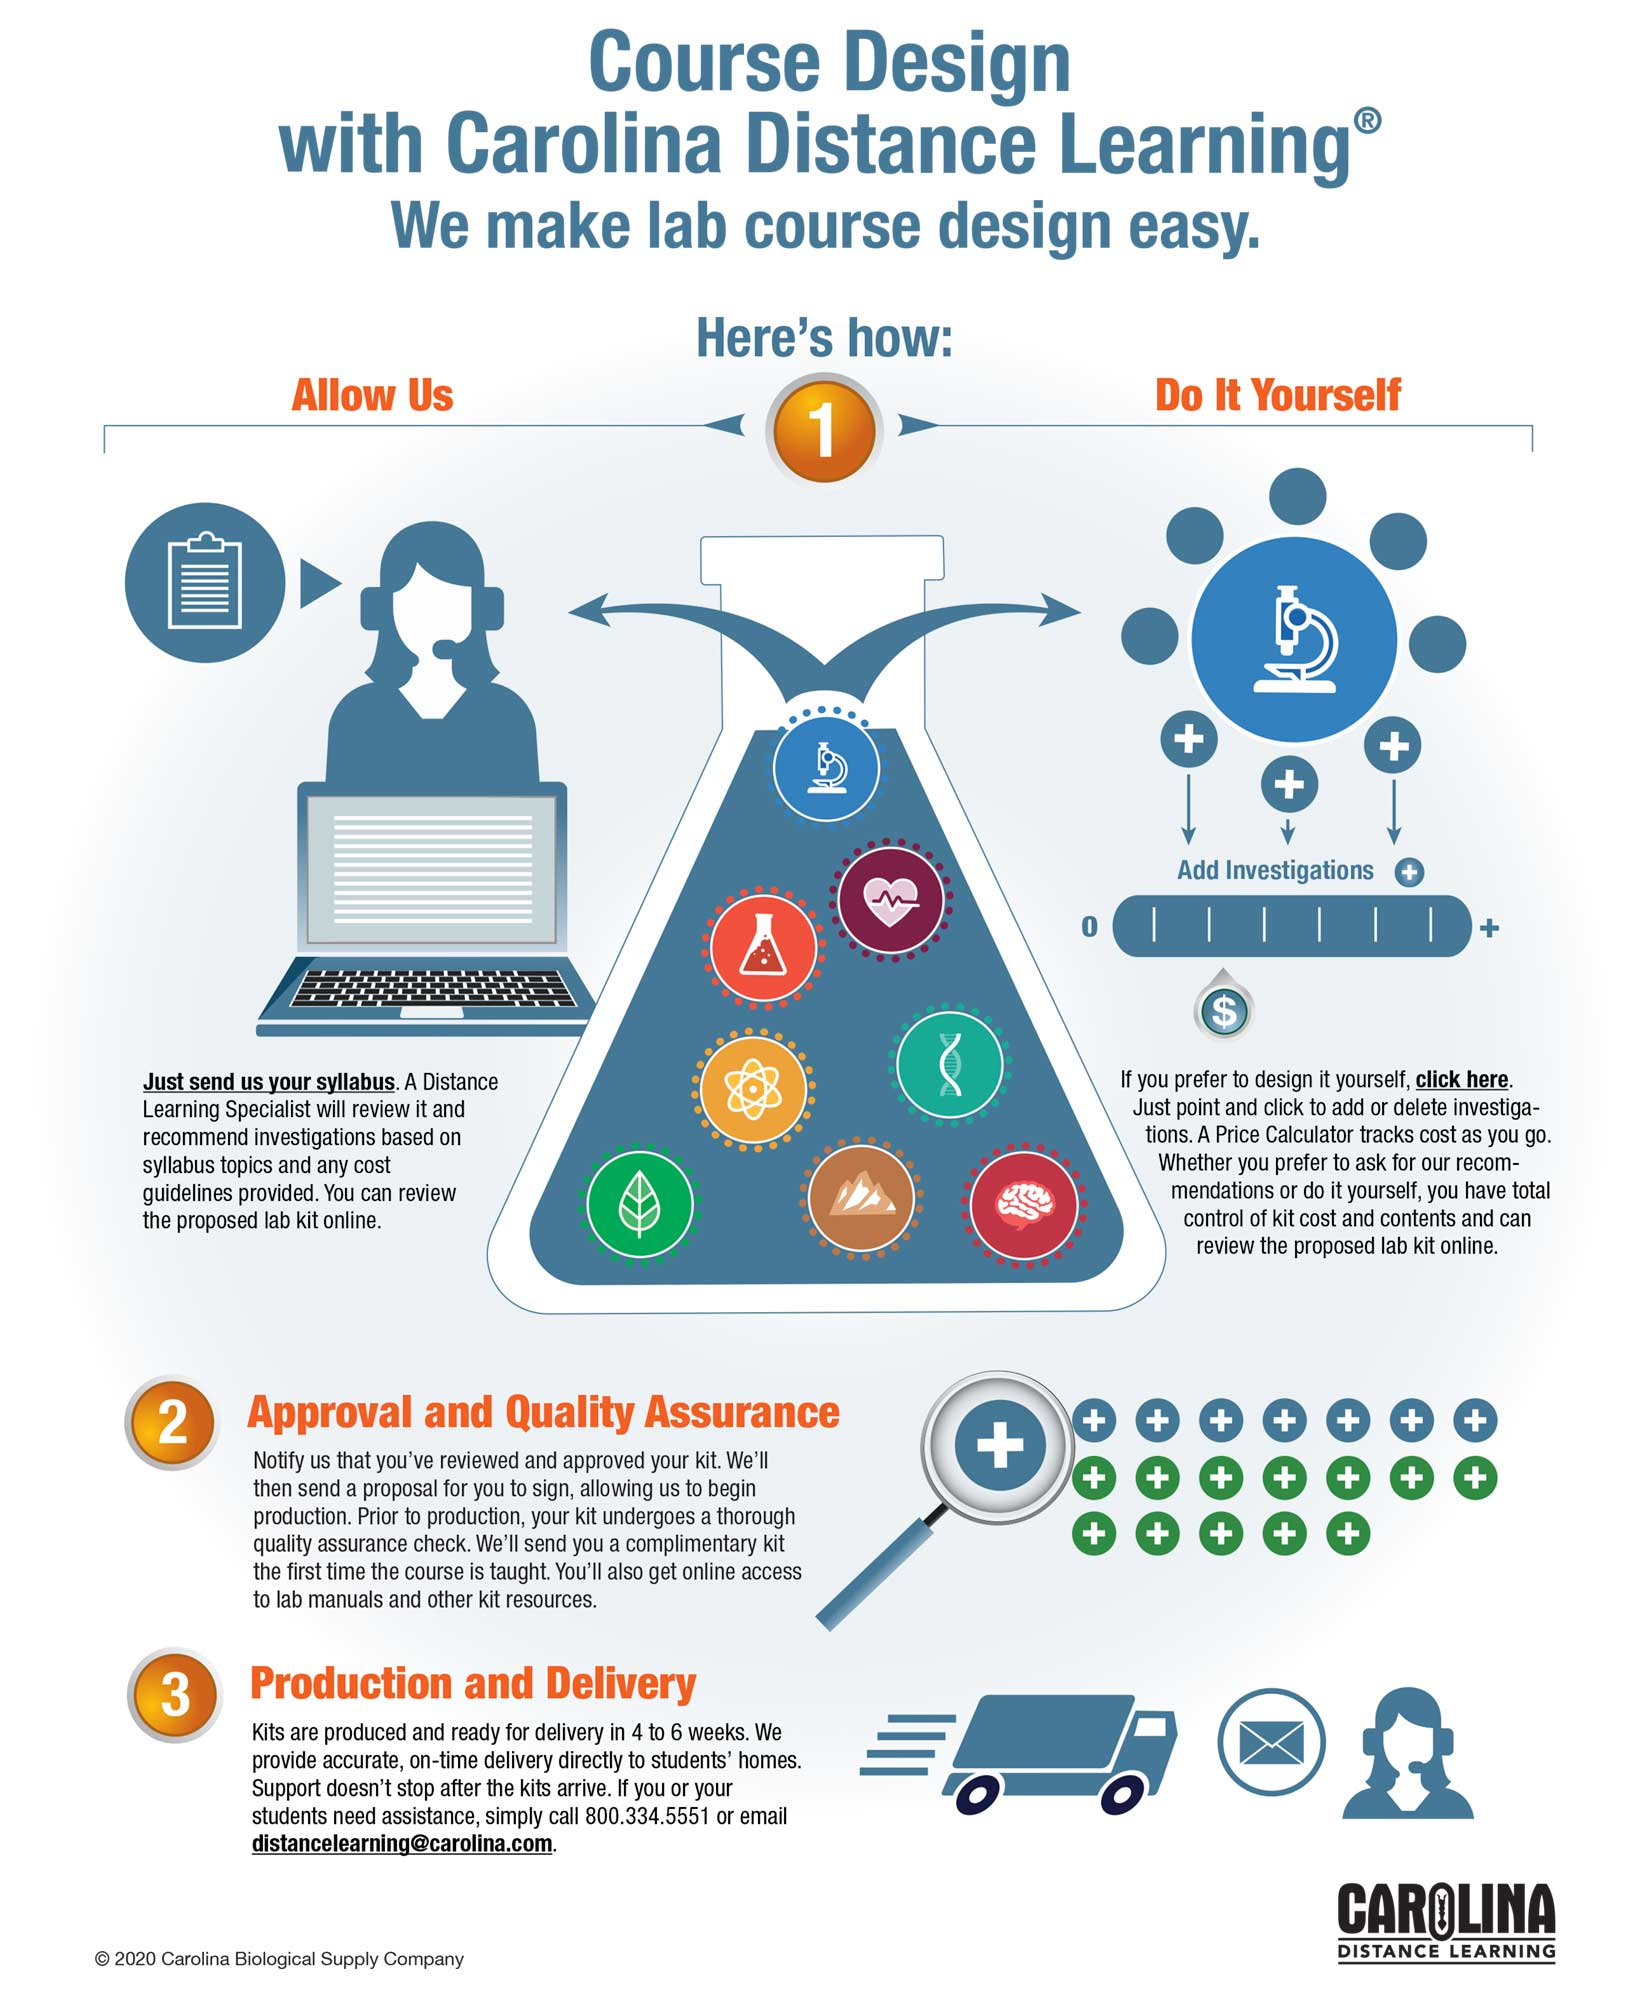 The Carolina Distance Learning Course Design Cycle